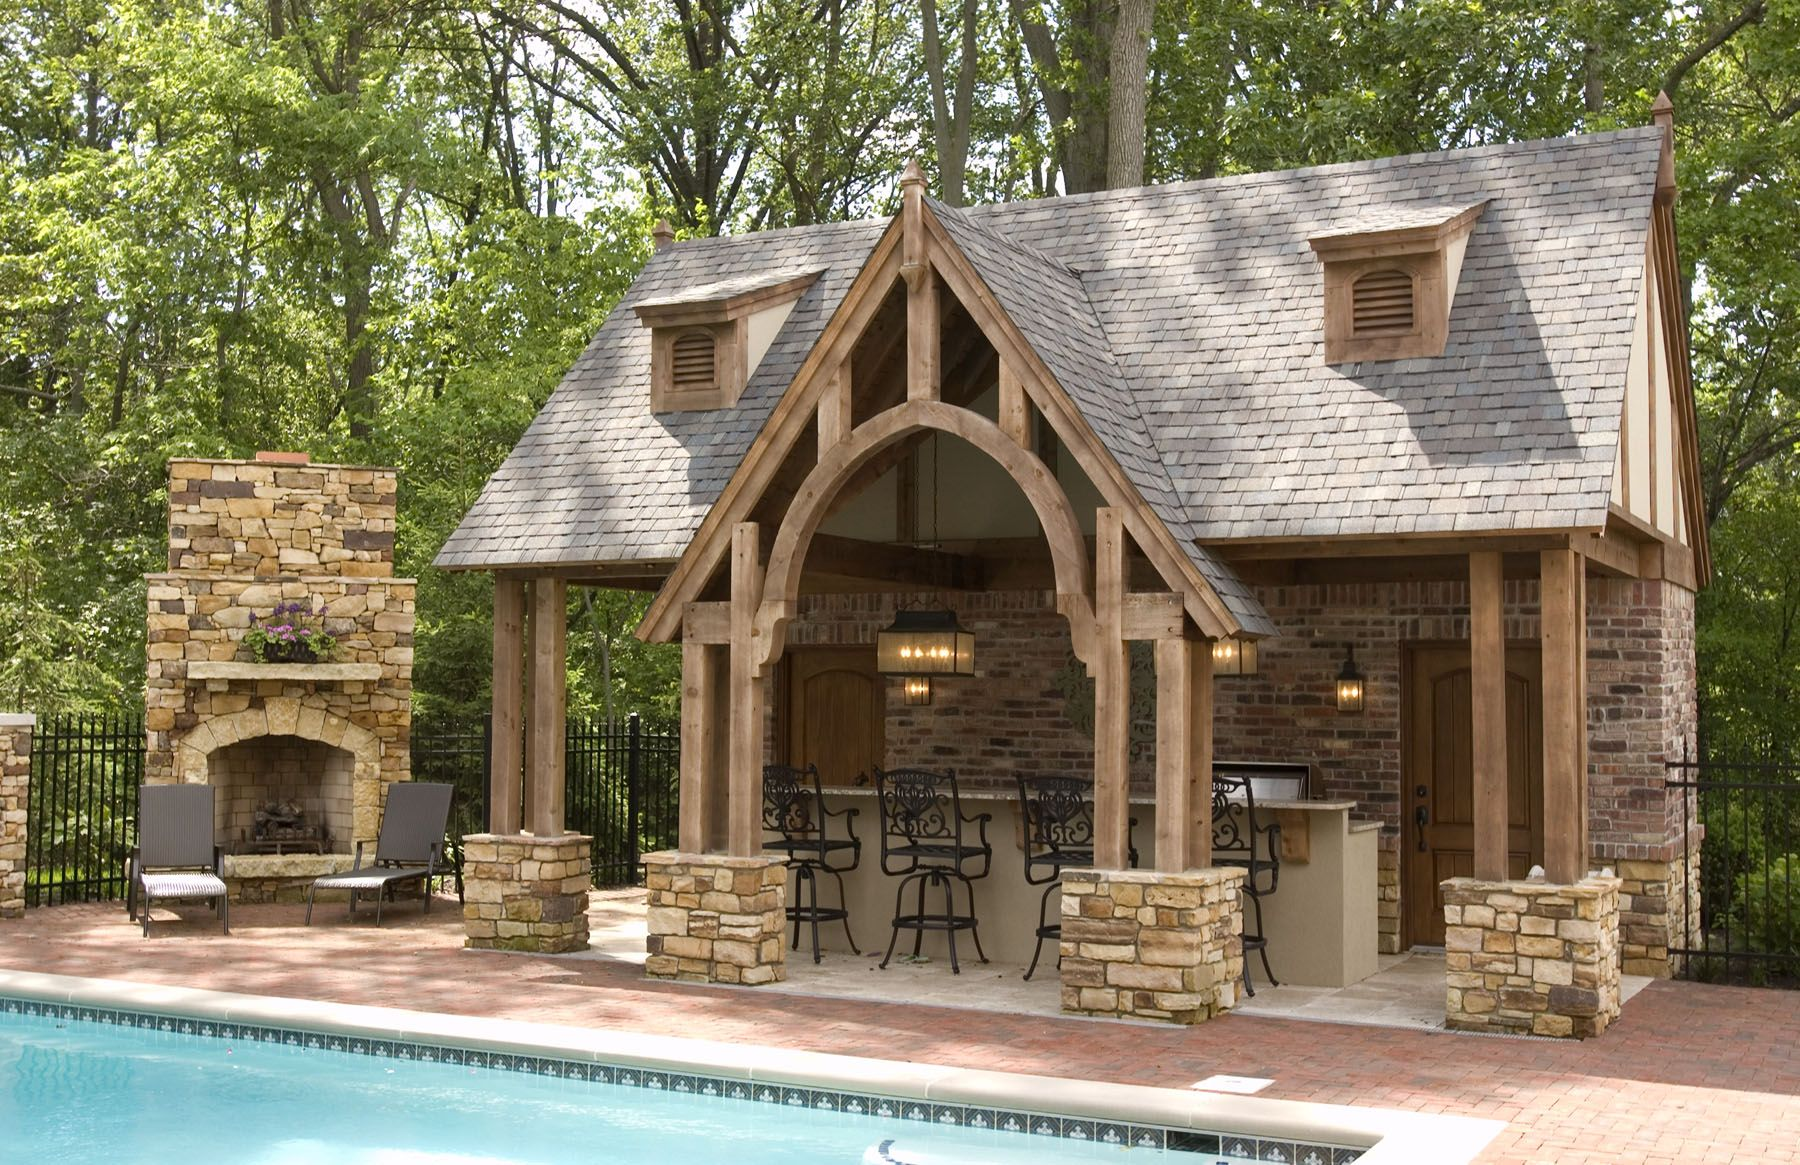 Pool House Ideas small pool house design ideas Outdoor Pool And Fireplace Designs Outdoor Kitchen And Pool House Case Indianapolis And Carmel